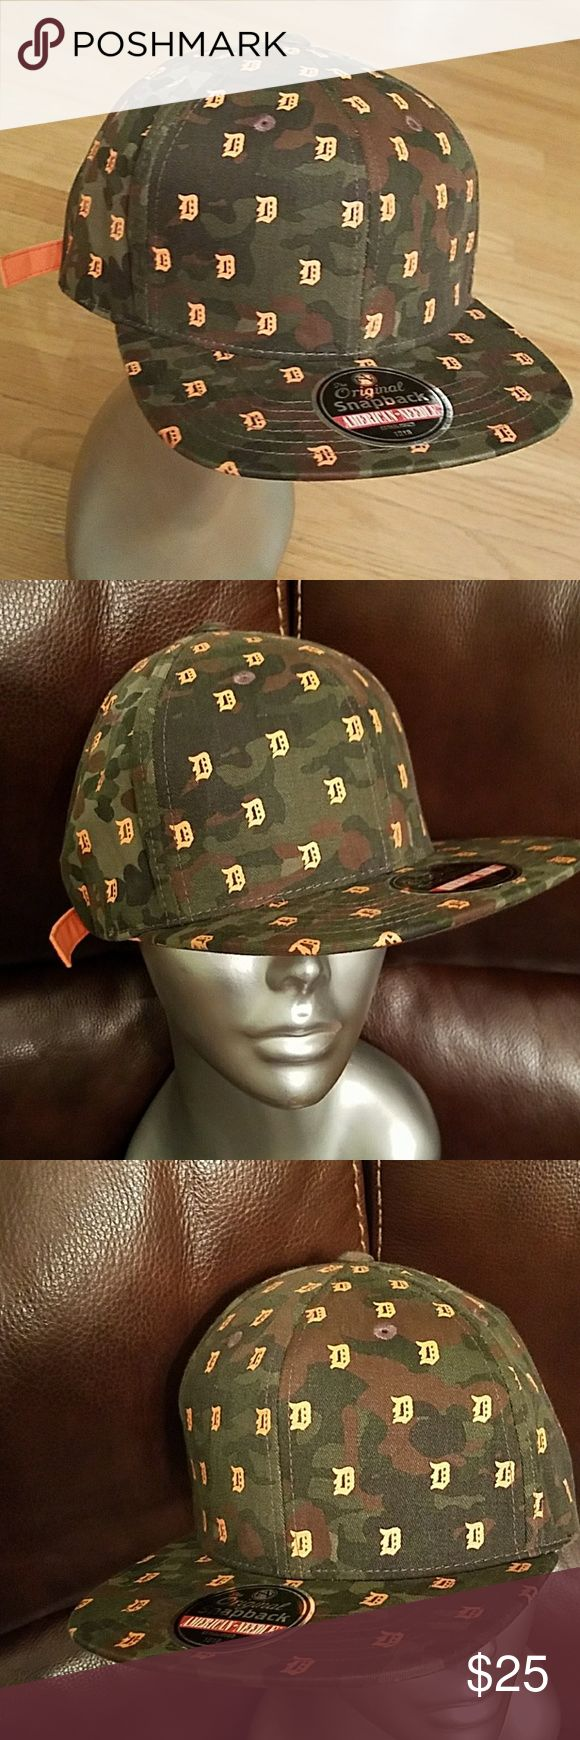 American Needle Detroit Tigers Camo Strapback Hat Official Cooperstown collection by american needle. DETROIT Tigers strapback cap.  Camo Green and bright orange. Unisex strapback cap.100% cotton. Brand new with sticker tag. American Needle Accessories Hats